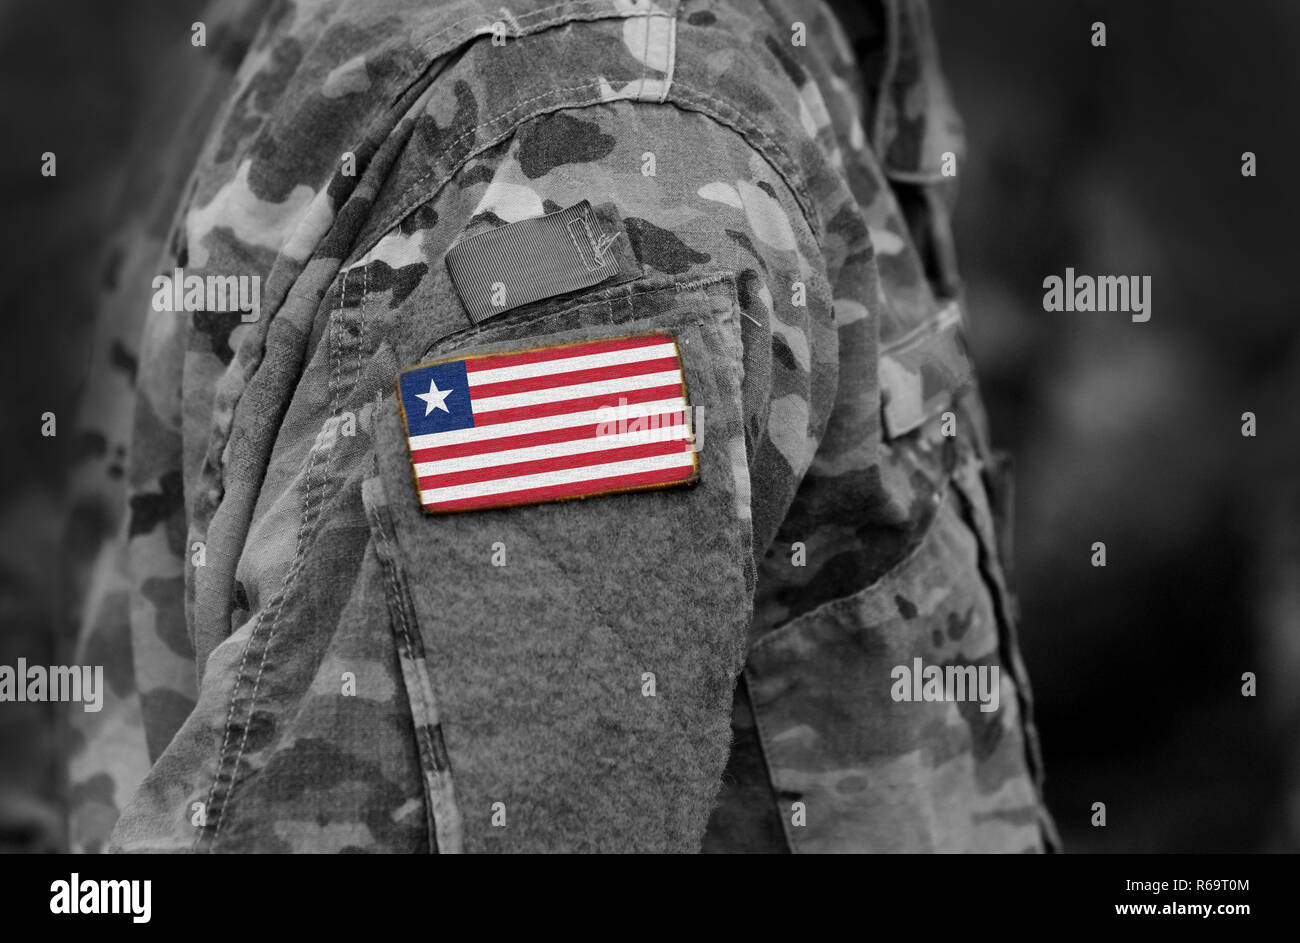 Flag of Liberia on soldiers arm. Liberia flag on military uniform. Army, troops, military, Africa (collage). - Stock Image